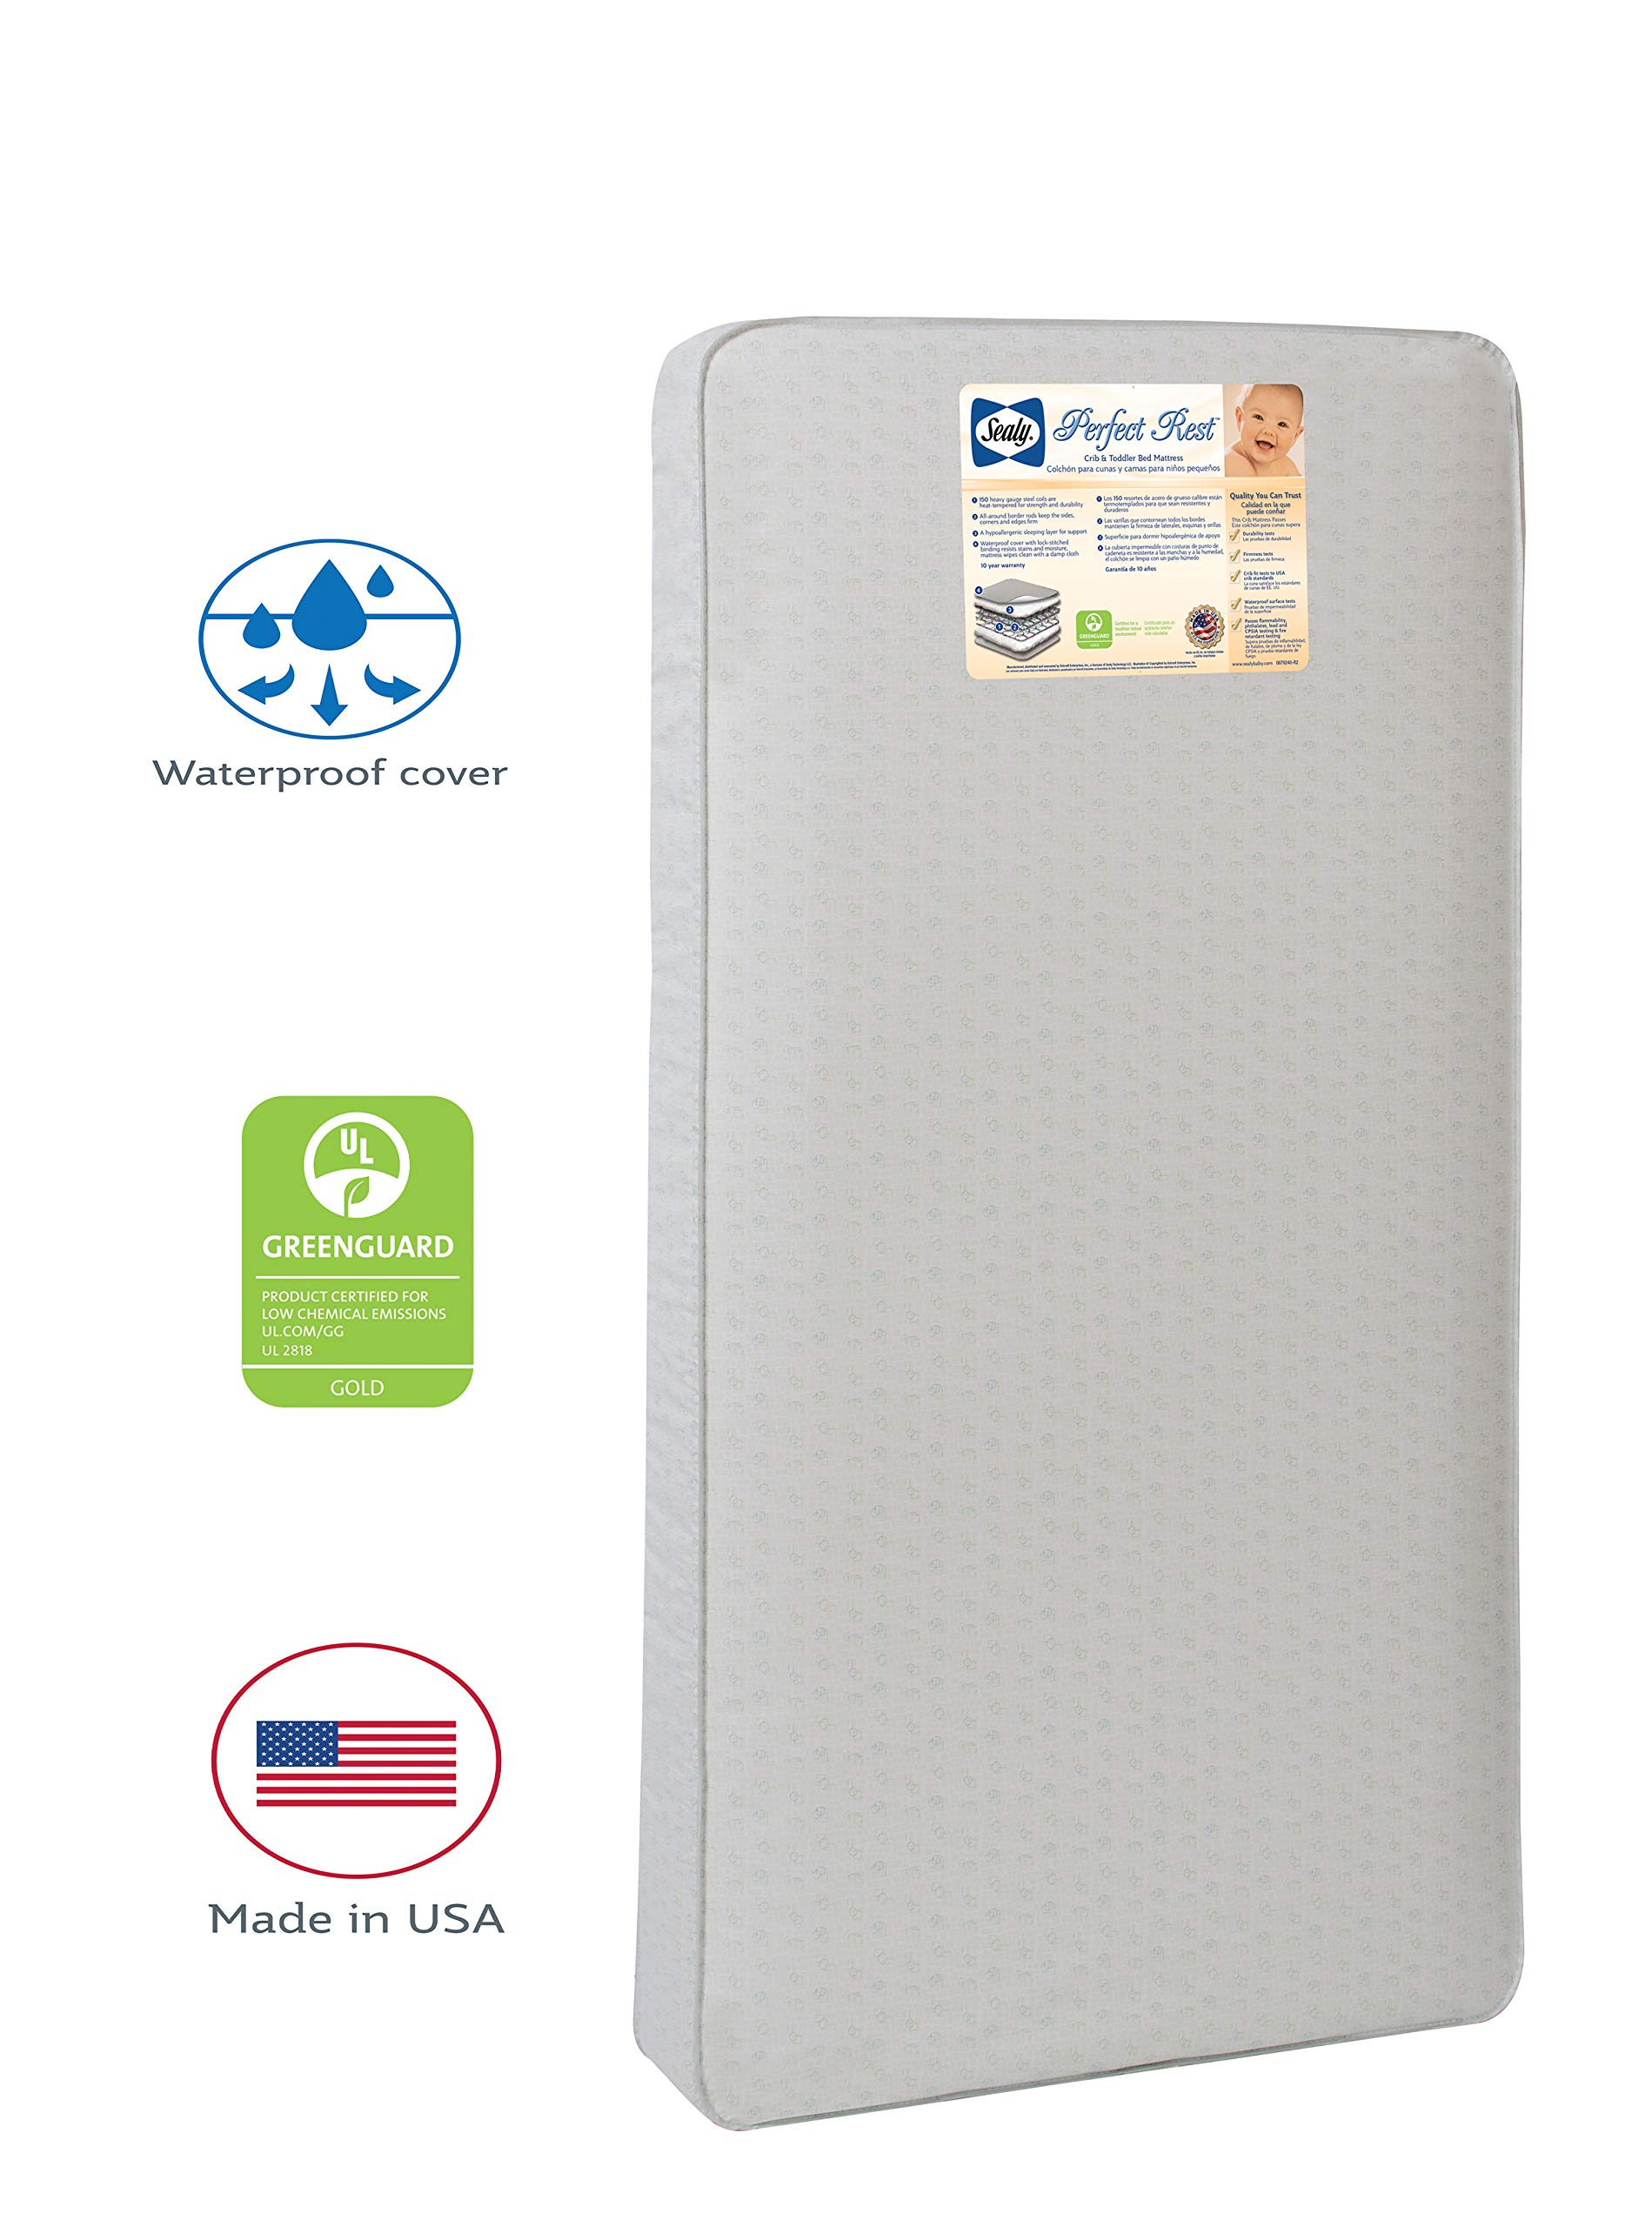 Sealy Baby Perfect Rest Waterproof Standard Toddler & Baby Crib Mattress - 150 Extra Firm Coils, 51.7'' x 27.3'' by Sealy